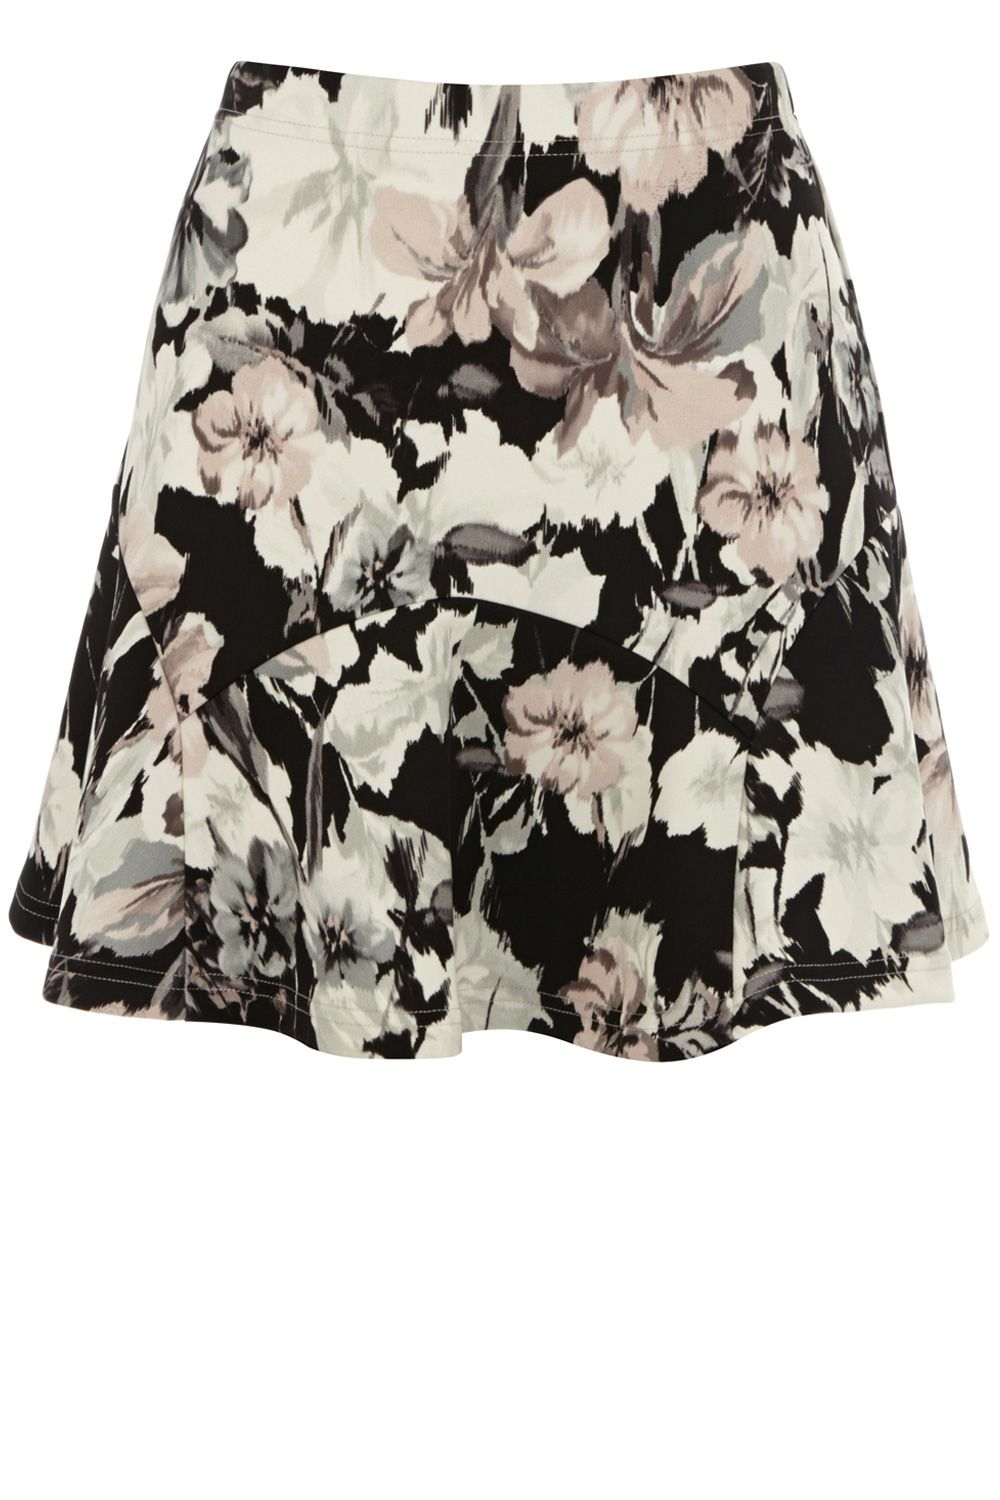 Blurred lily print skirt